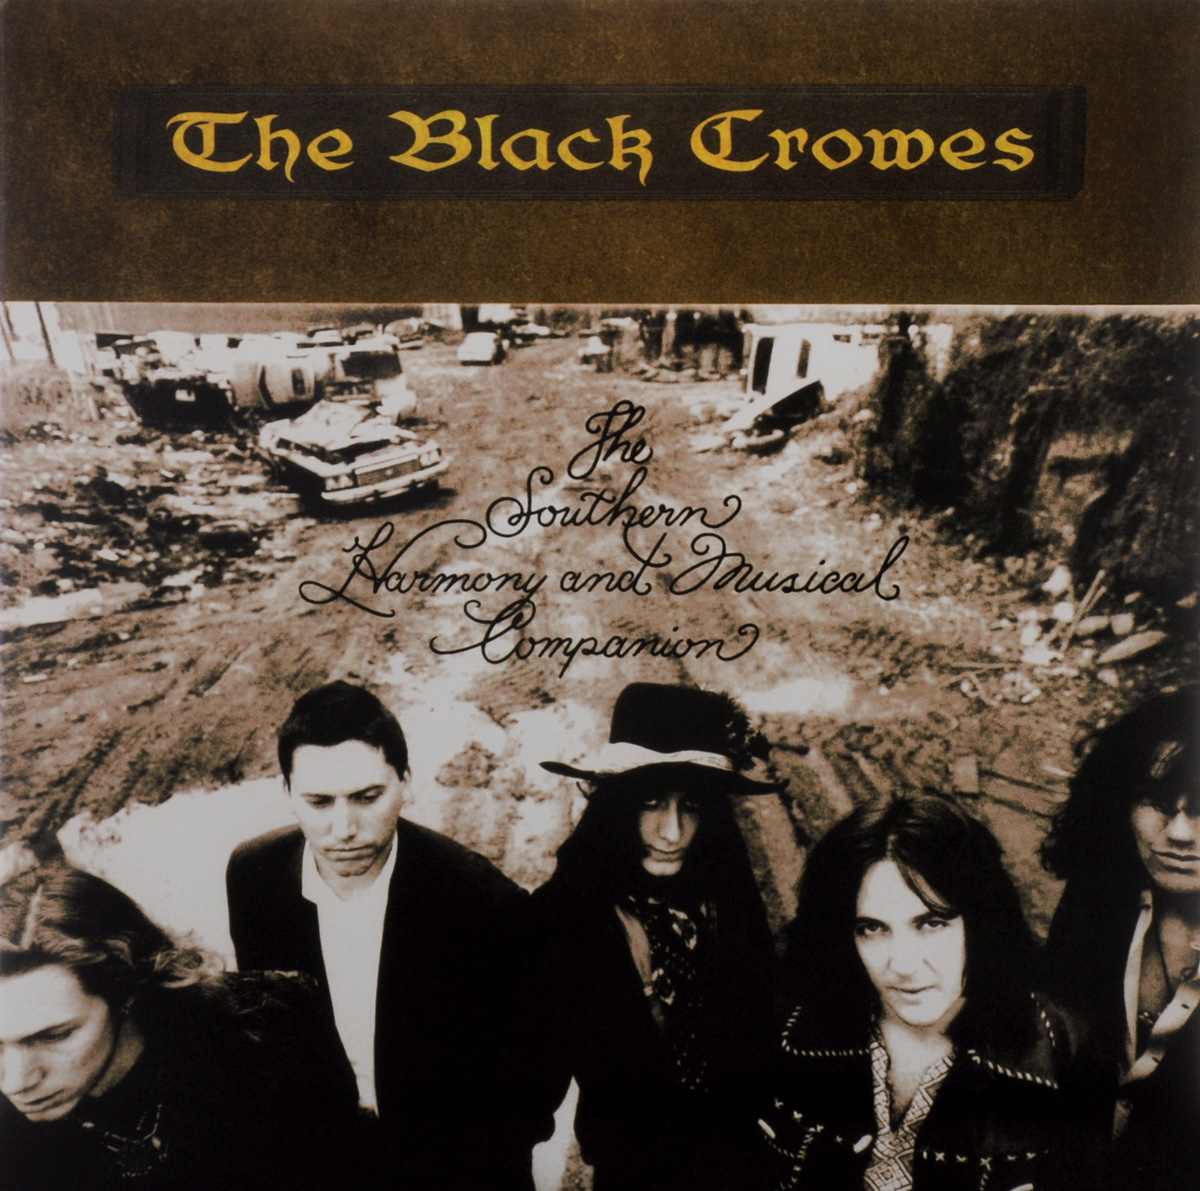 The Black Crowes The Black Crowes. The Southern Harmony And Musical Companion (2 LP) the black crowes the black crowes three snakes and one charm 2 lp